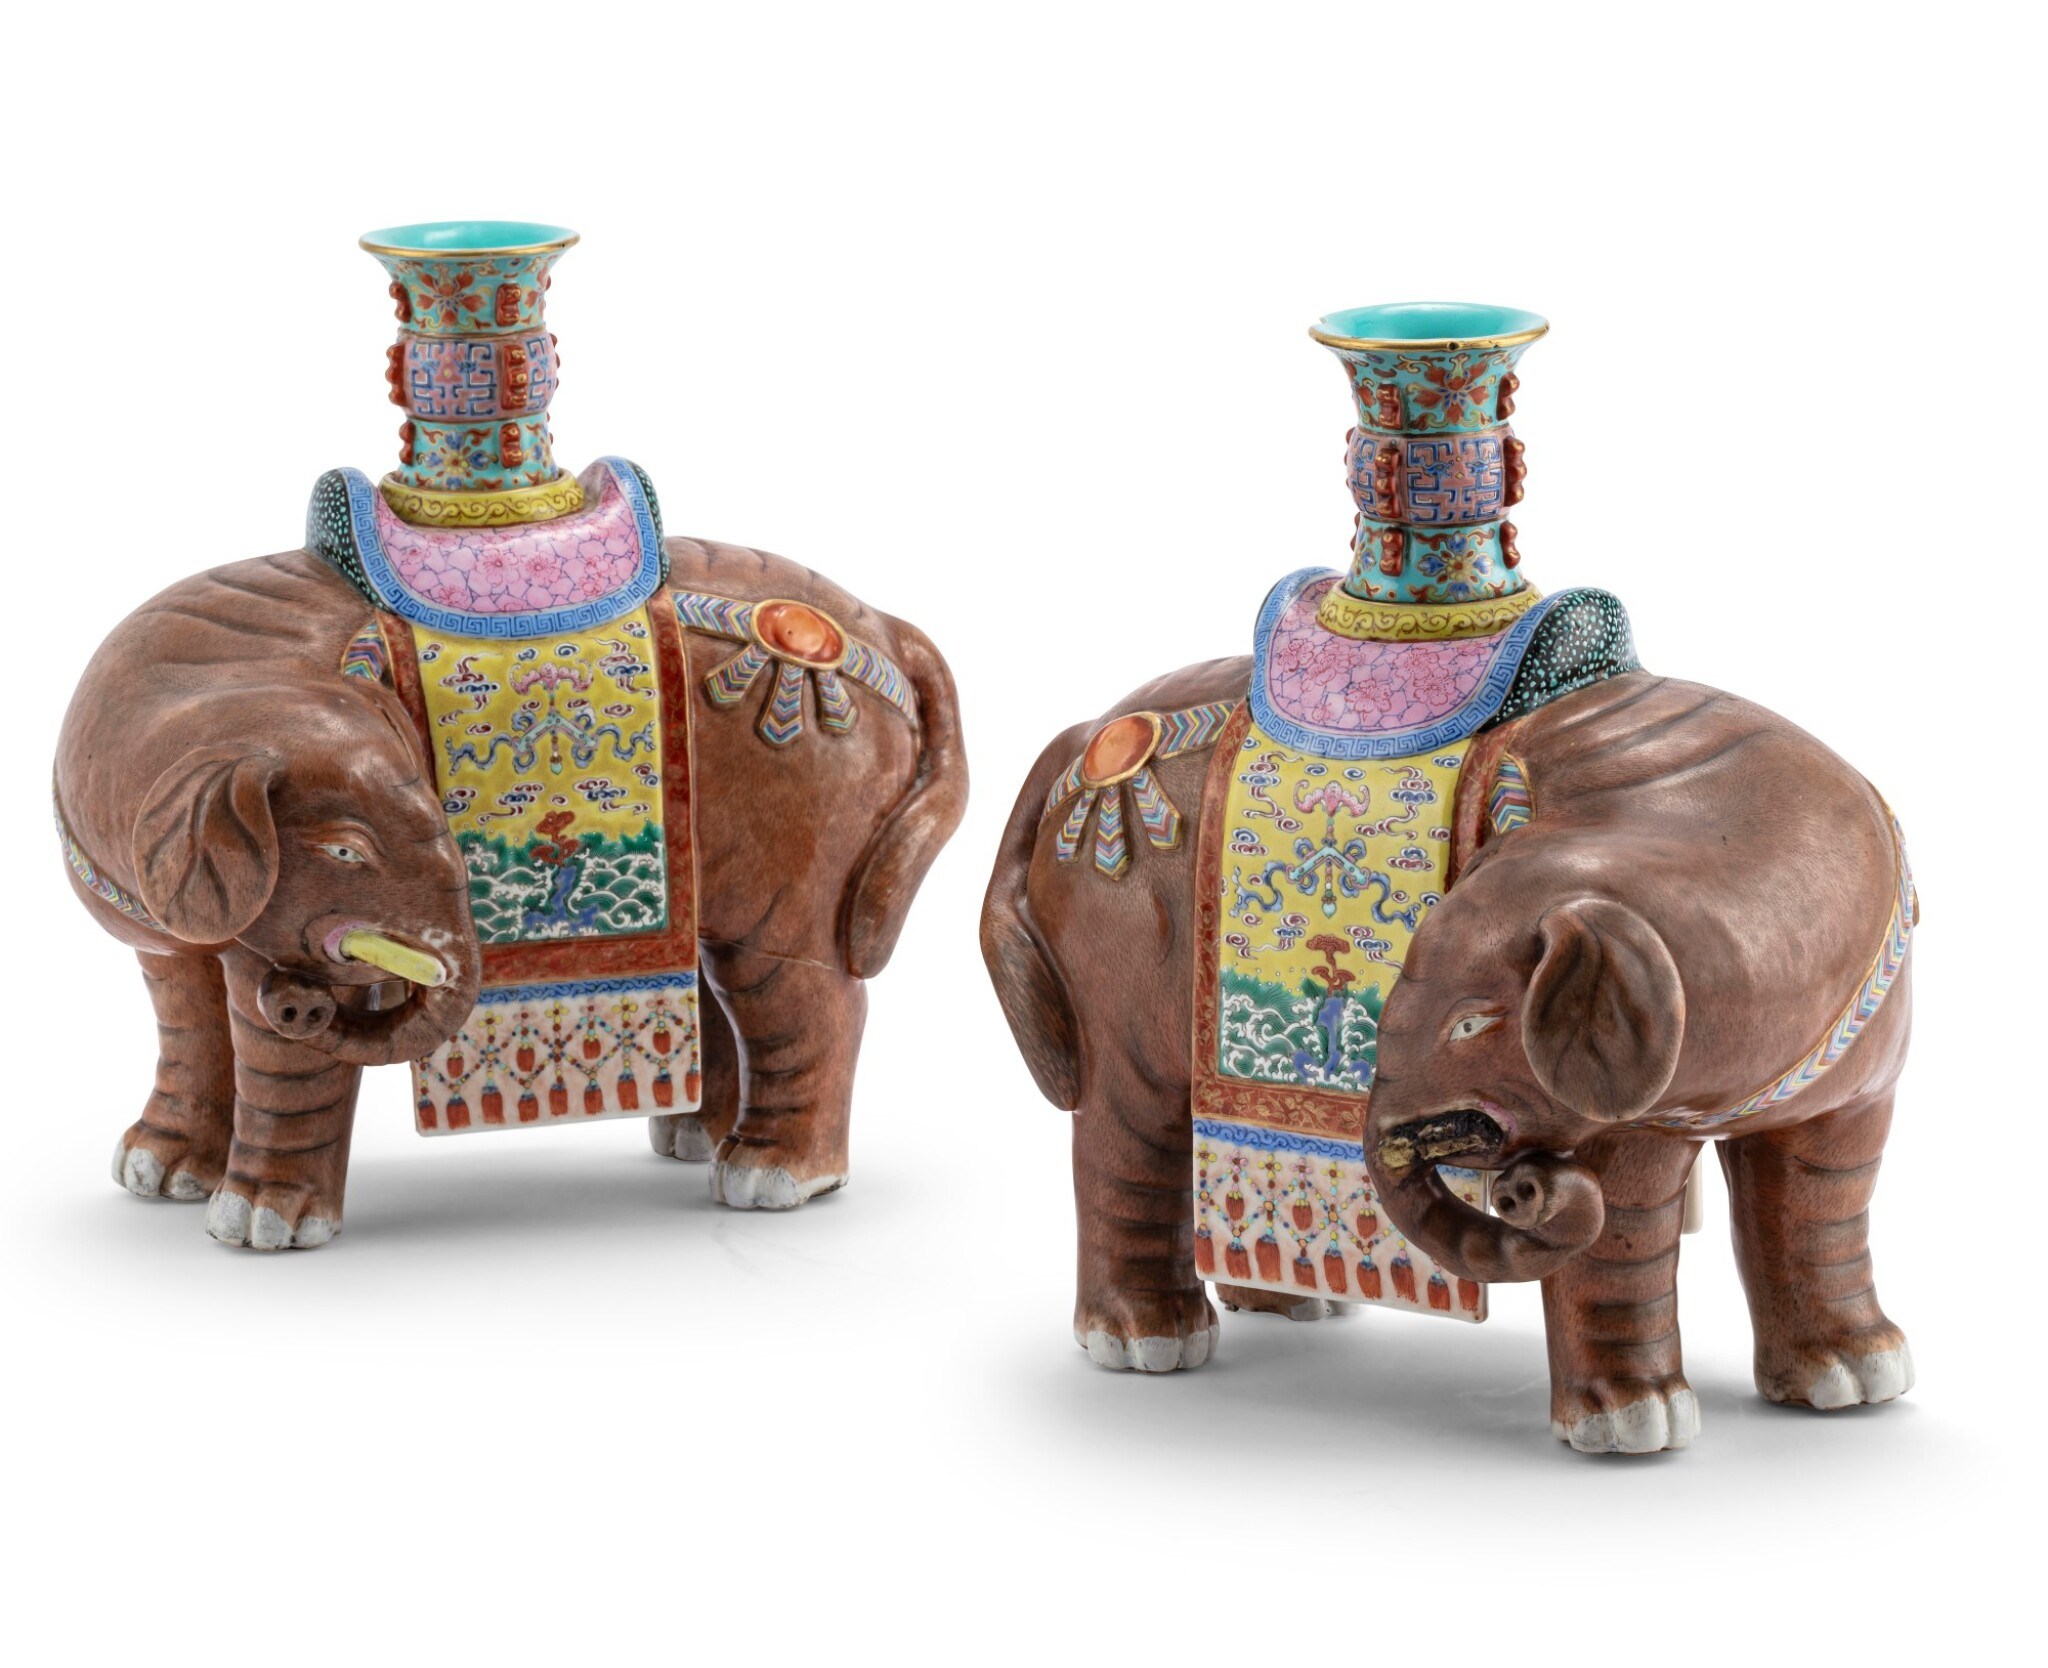 View 1 of Lot 221. Paire d'éléphants en porcelaine de la Famille Rose Dynastie Qing, XIXE siècle | 清十九世紀 粉彩太平有象尊一對 | A pair of large Famille-Rose elephants, Qing Dynasty, 19th century.